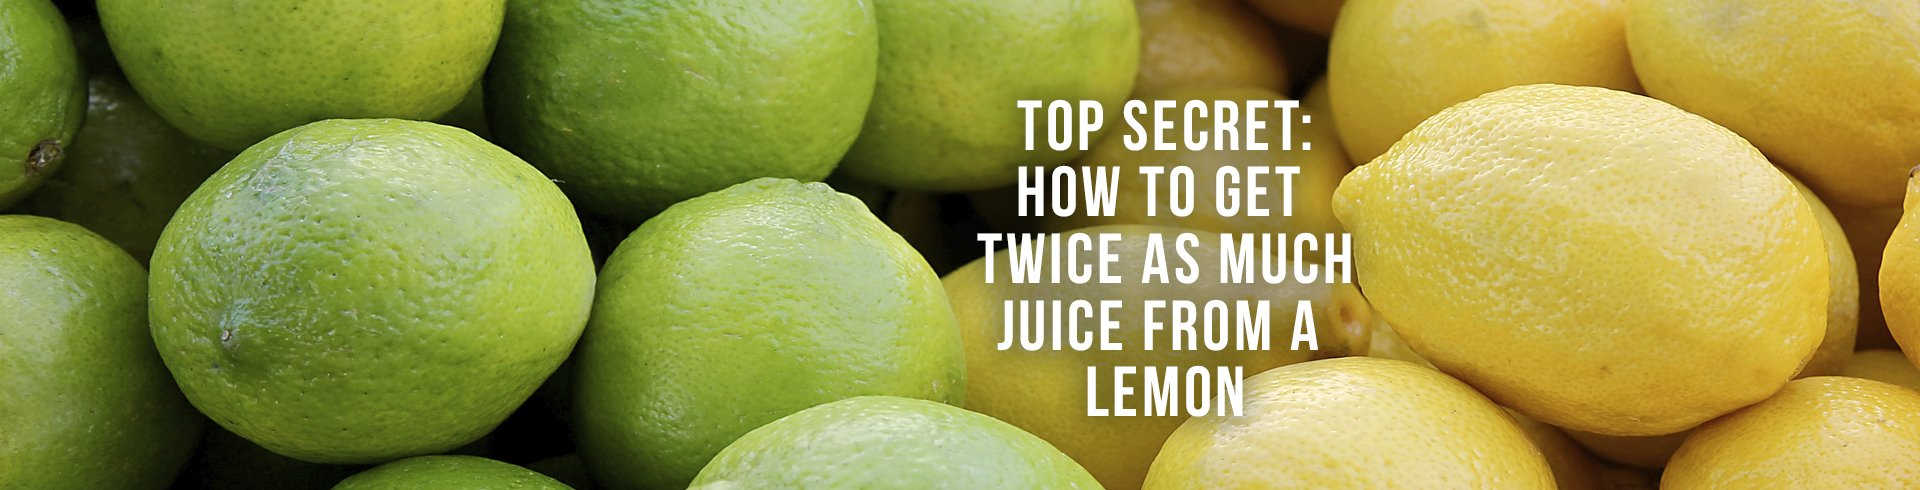 Top Secret: How to Get Twice As Much Juice From a Lemon